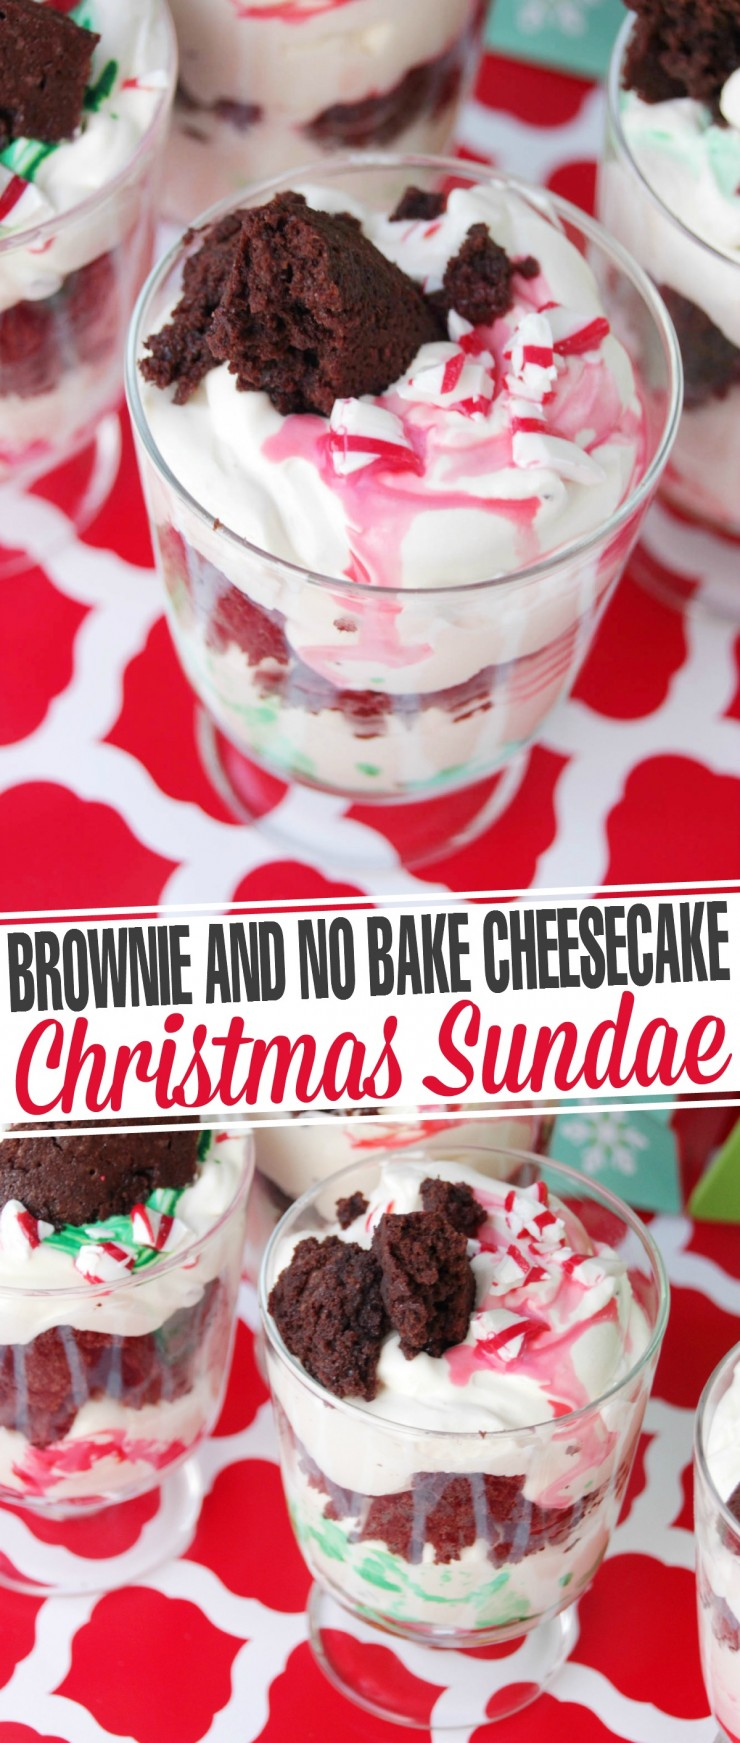 This Brownie & No Bake Cheesecake Christmas Sundae is the perfect way to celebrate the holidays. It is completely kid friendly - Picky eaters will love it!